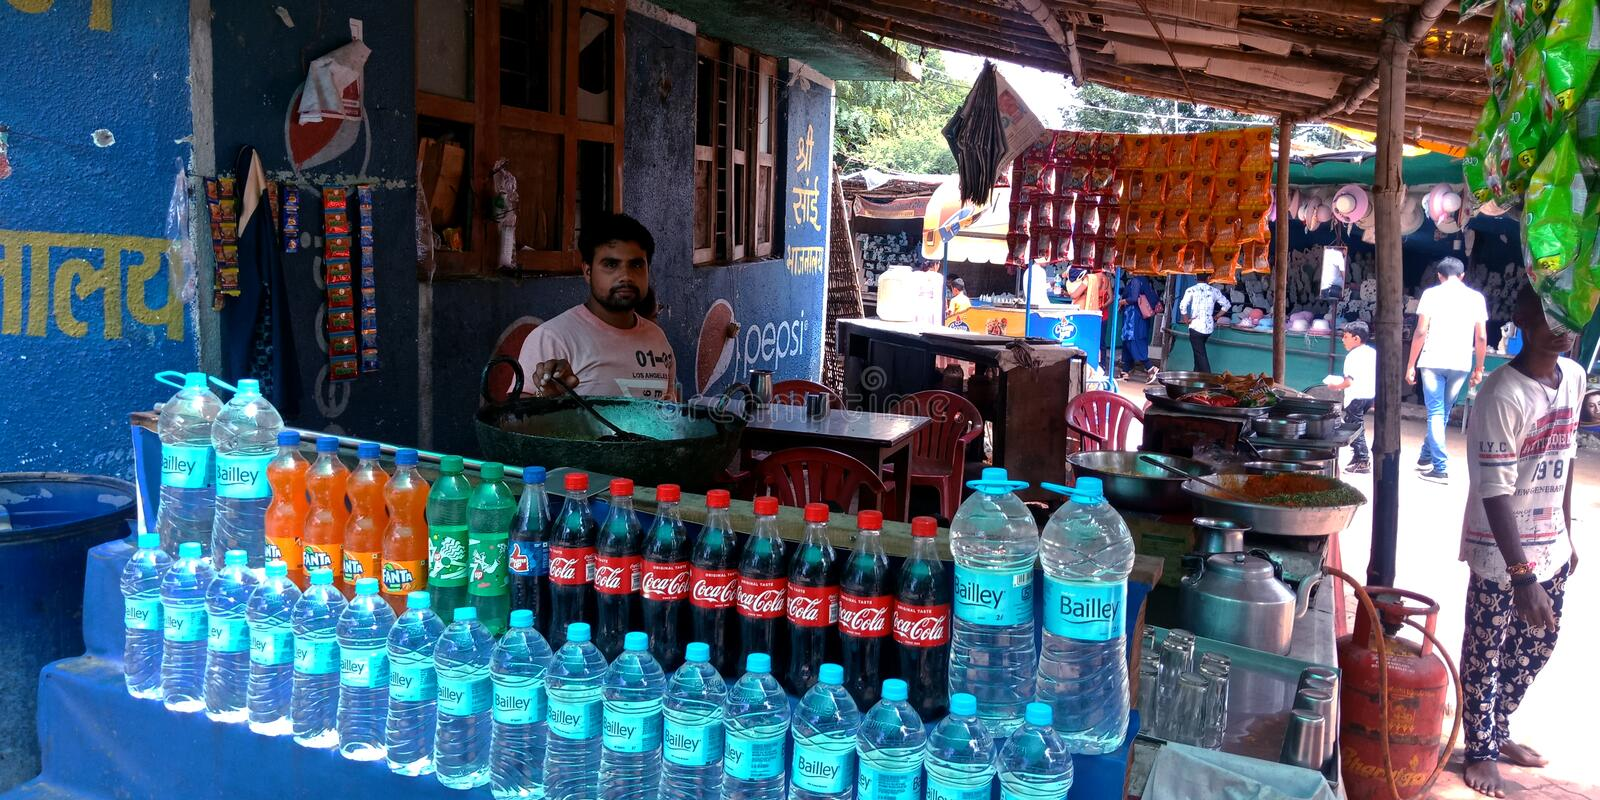 Indian street food corner selling cold drinks and water bottle at tourist place in India stock photo